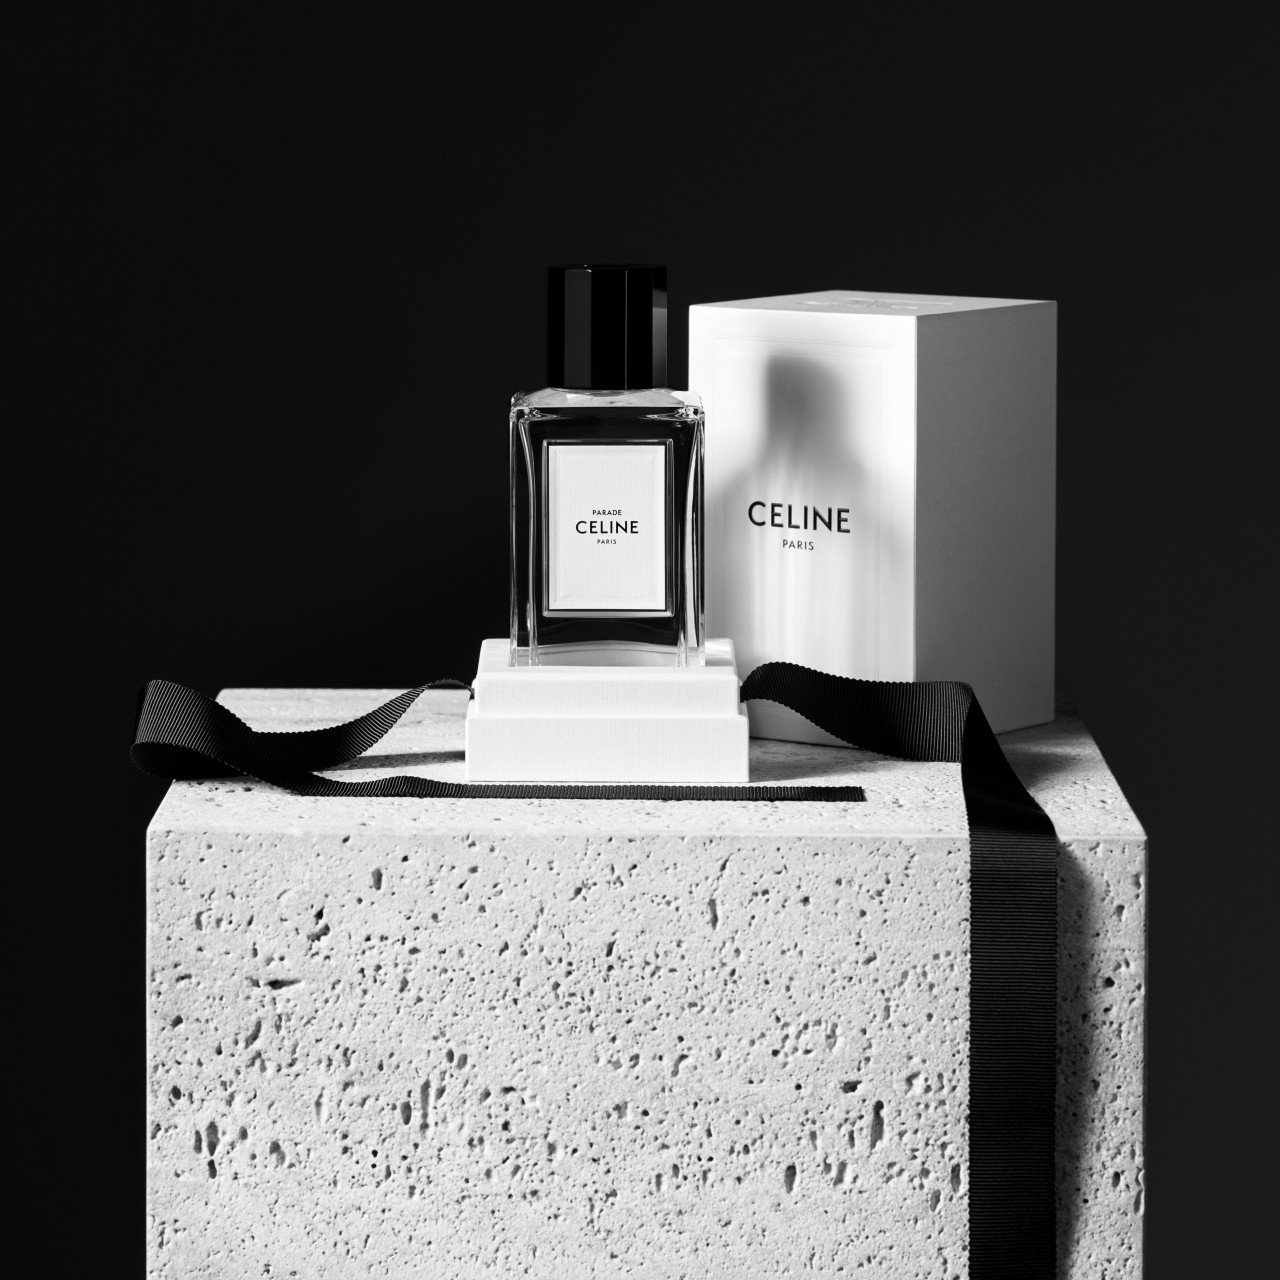 HK$19,000 for an old scent – has Dior gone too far? | South